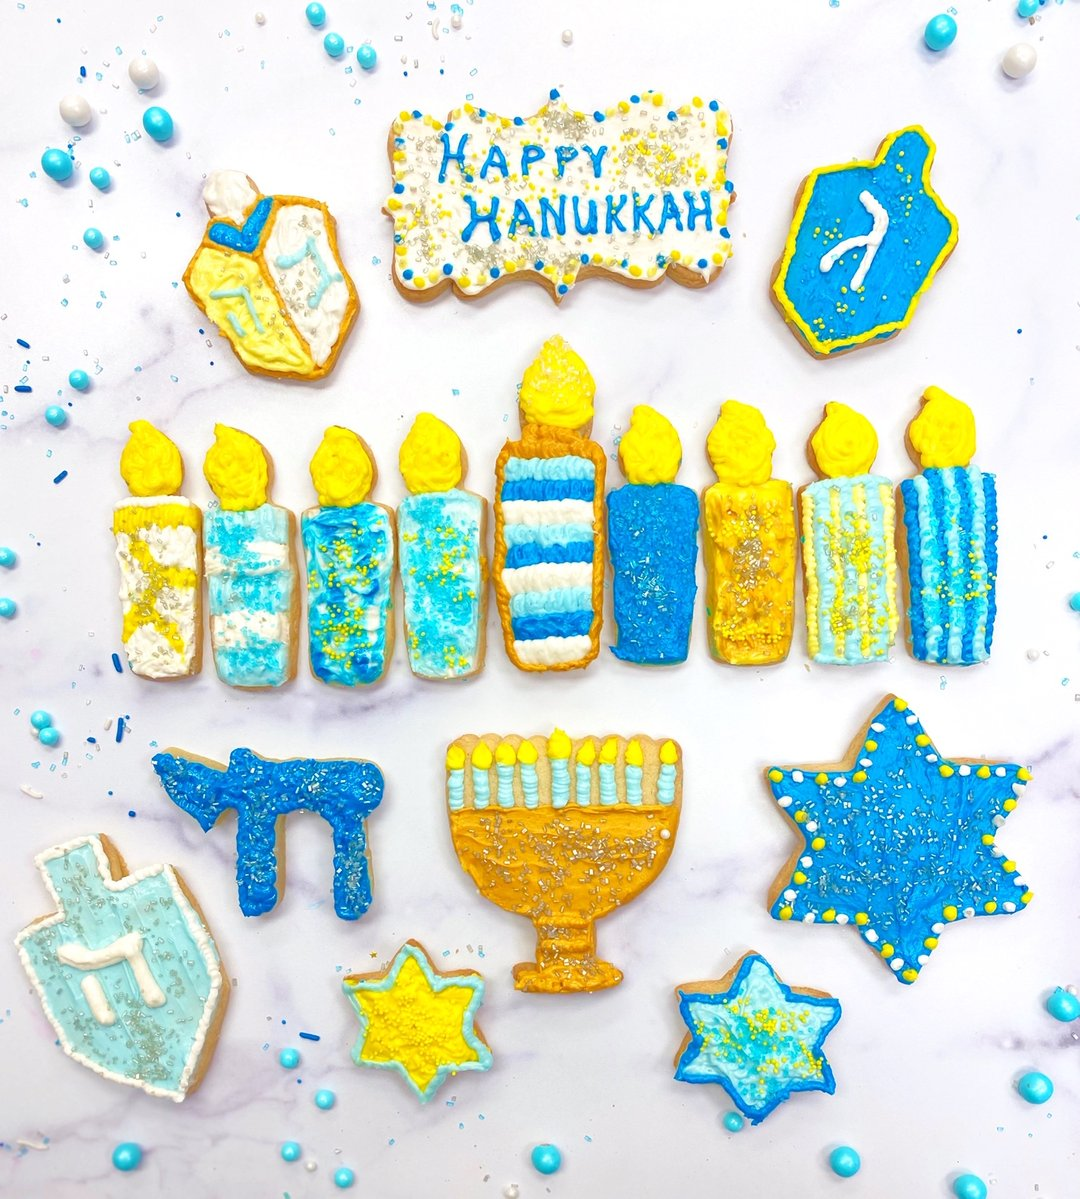 Menorah-shaped cookies with blue and yellow icing